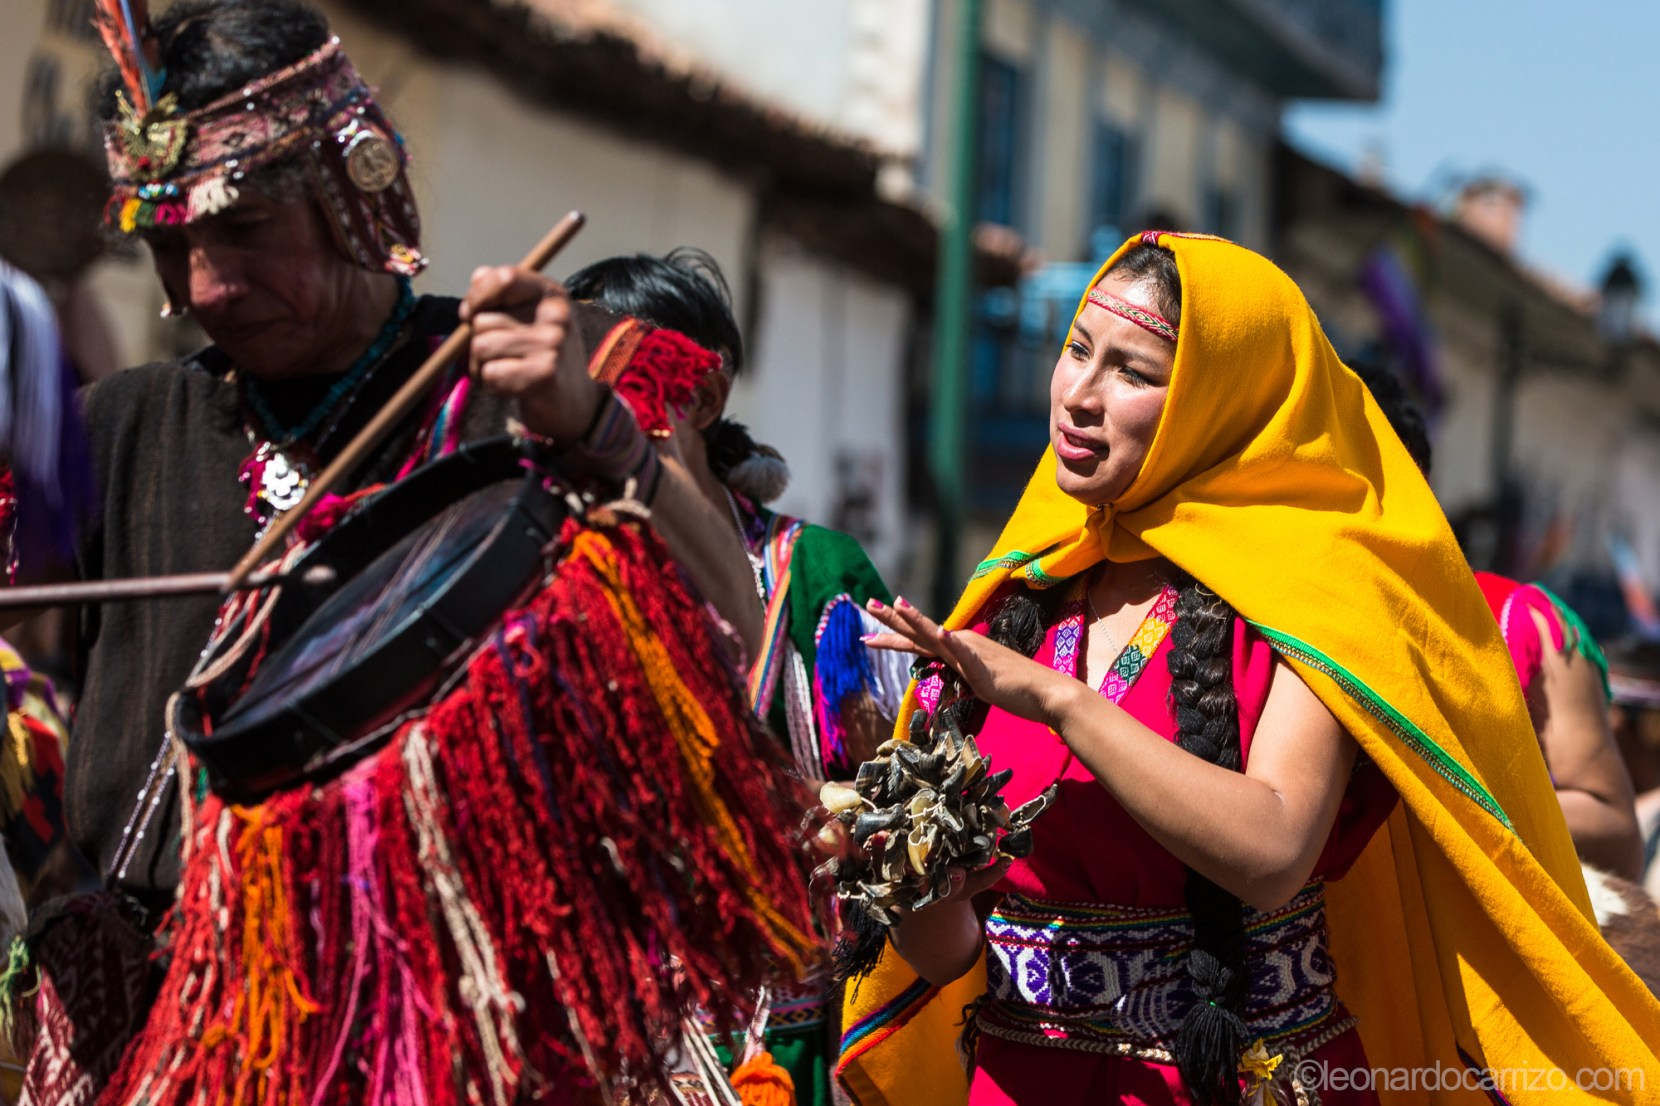 Inti-Raymi celebration, Cusco, Peru. photo by Leonardo Carrizo